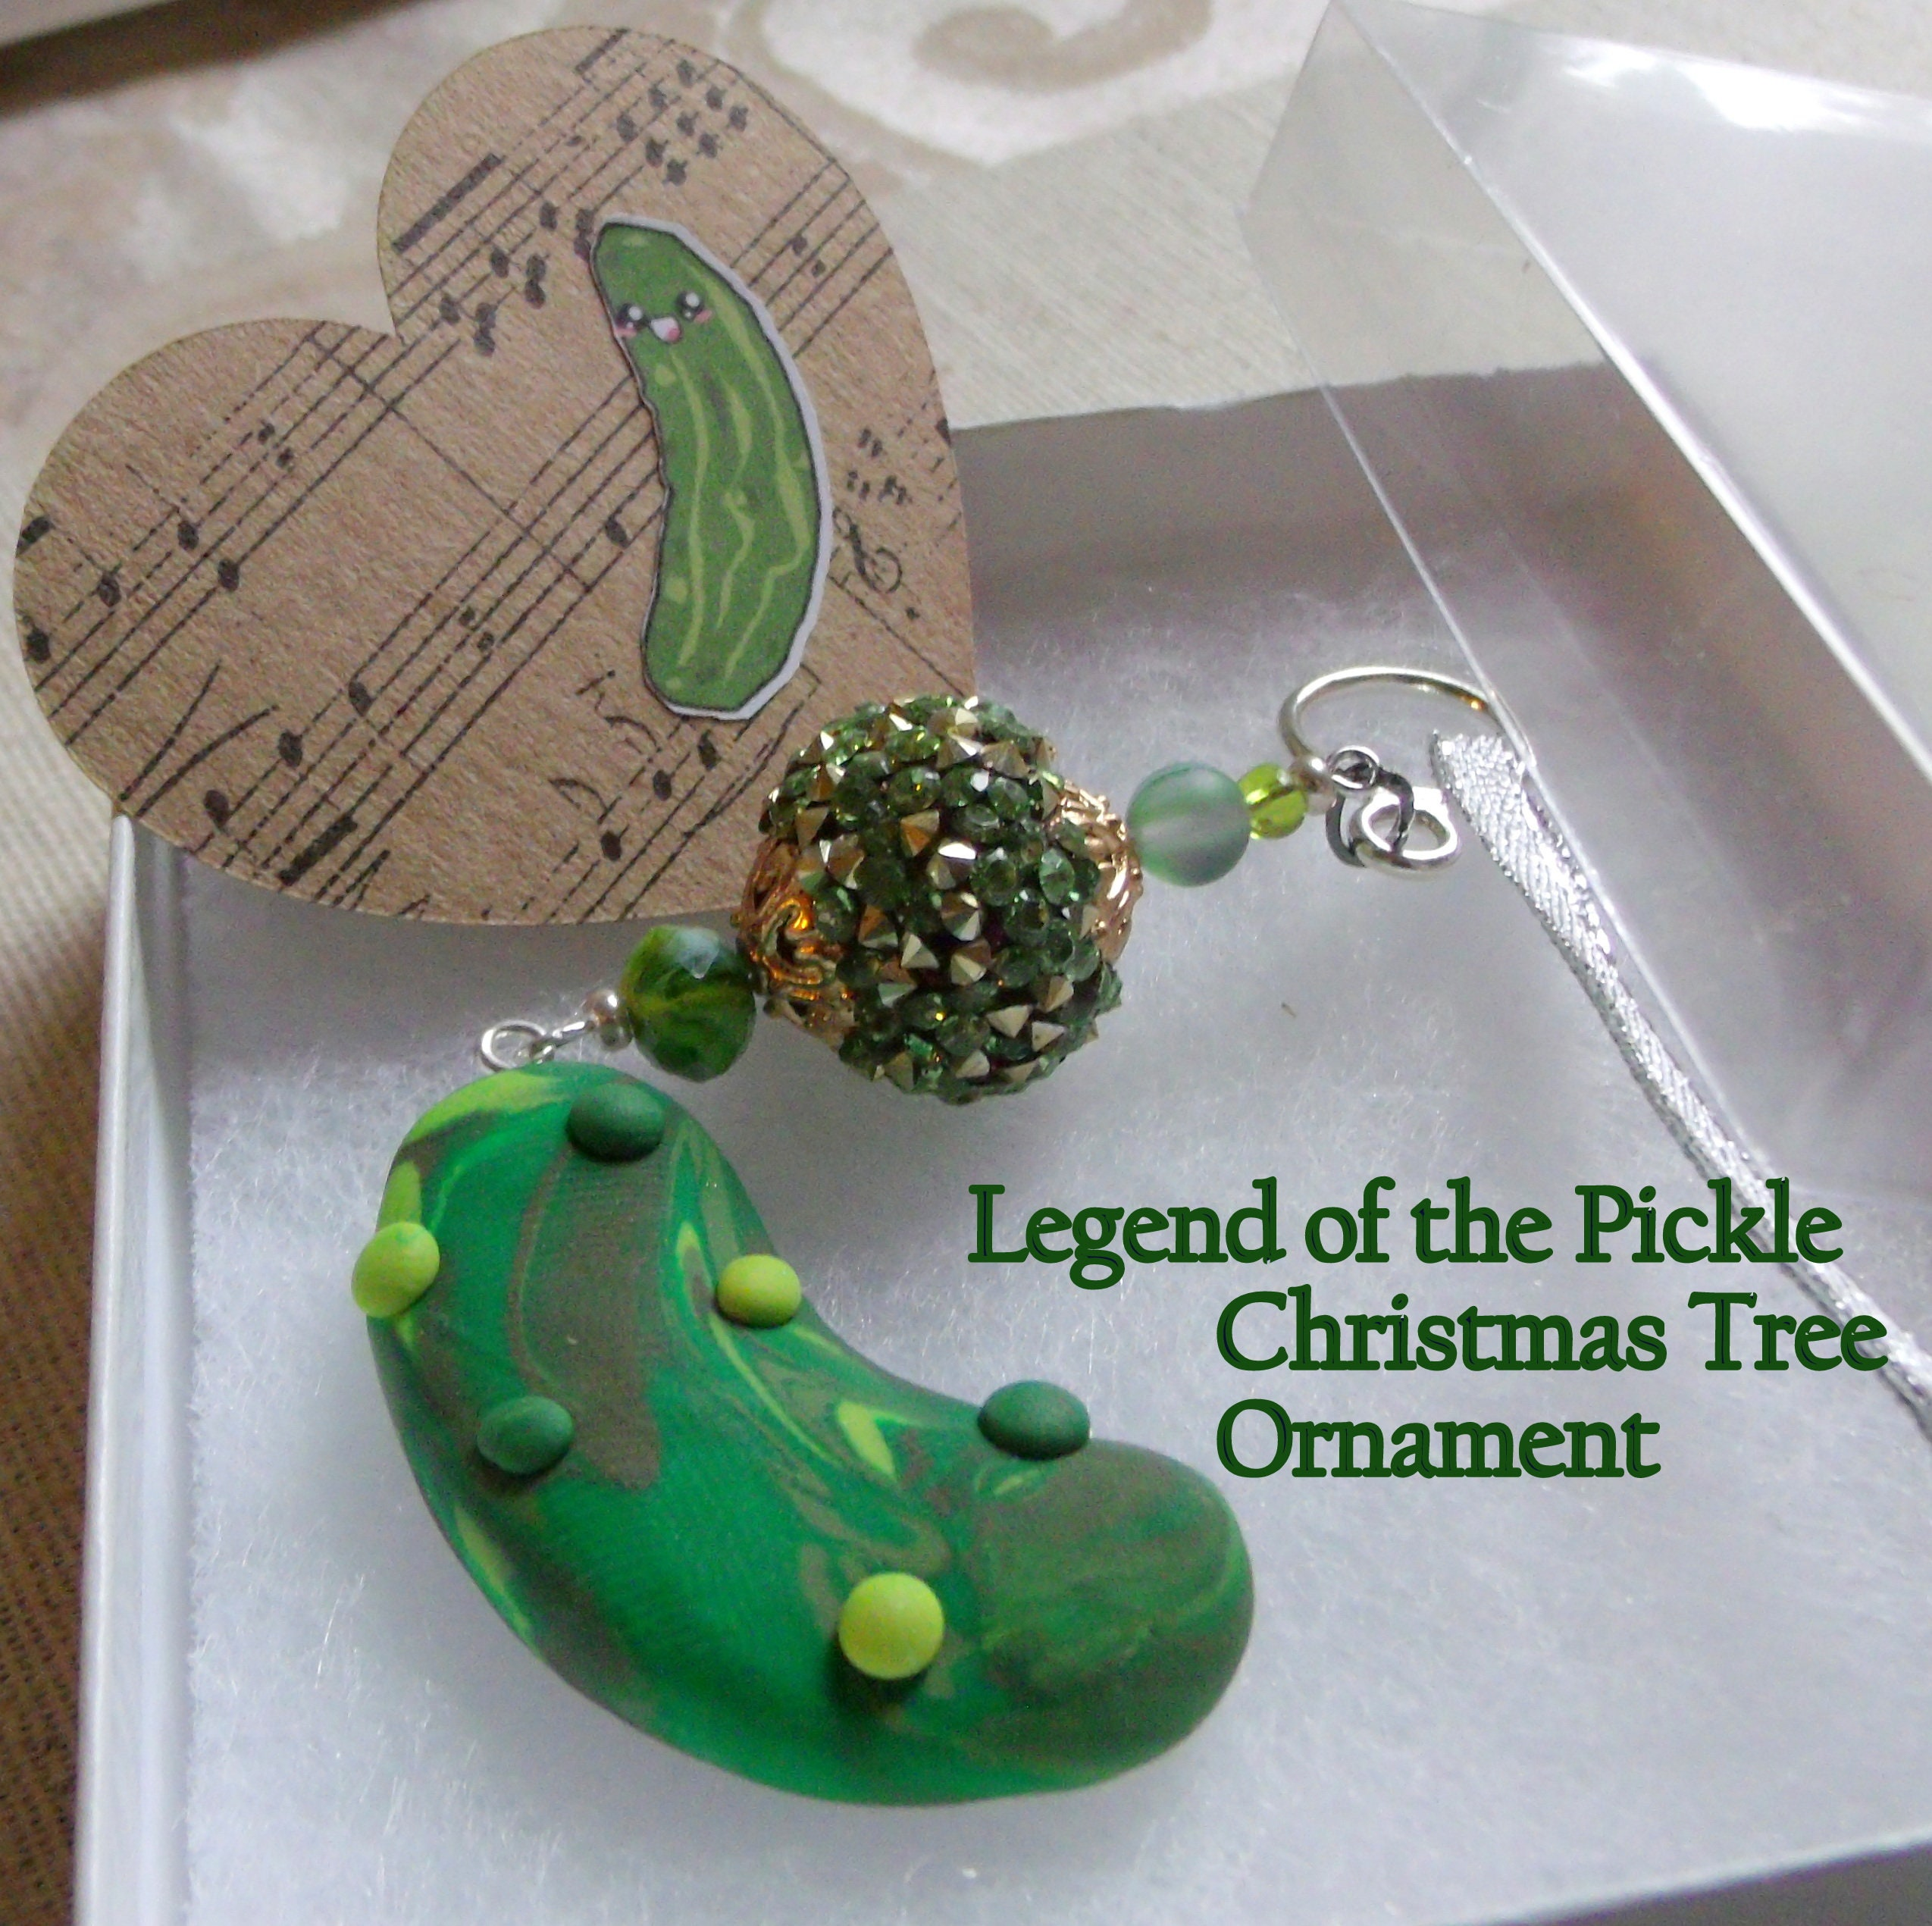 Christmas Pickle Tradition.Fancy Christmas Pickle Legend Of The Pickle Ornament